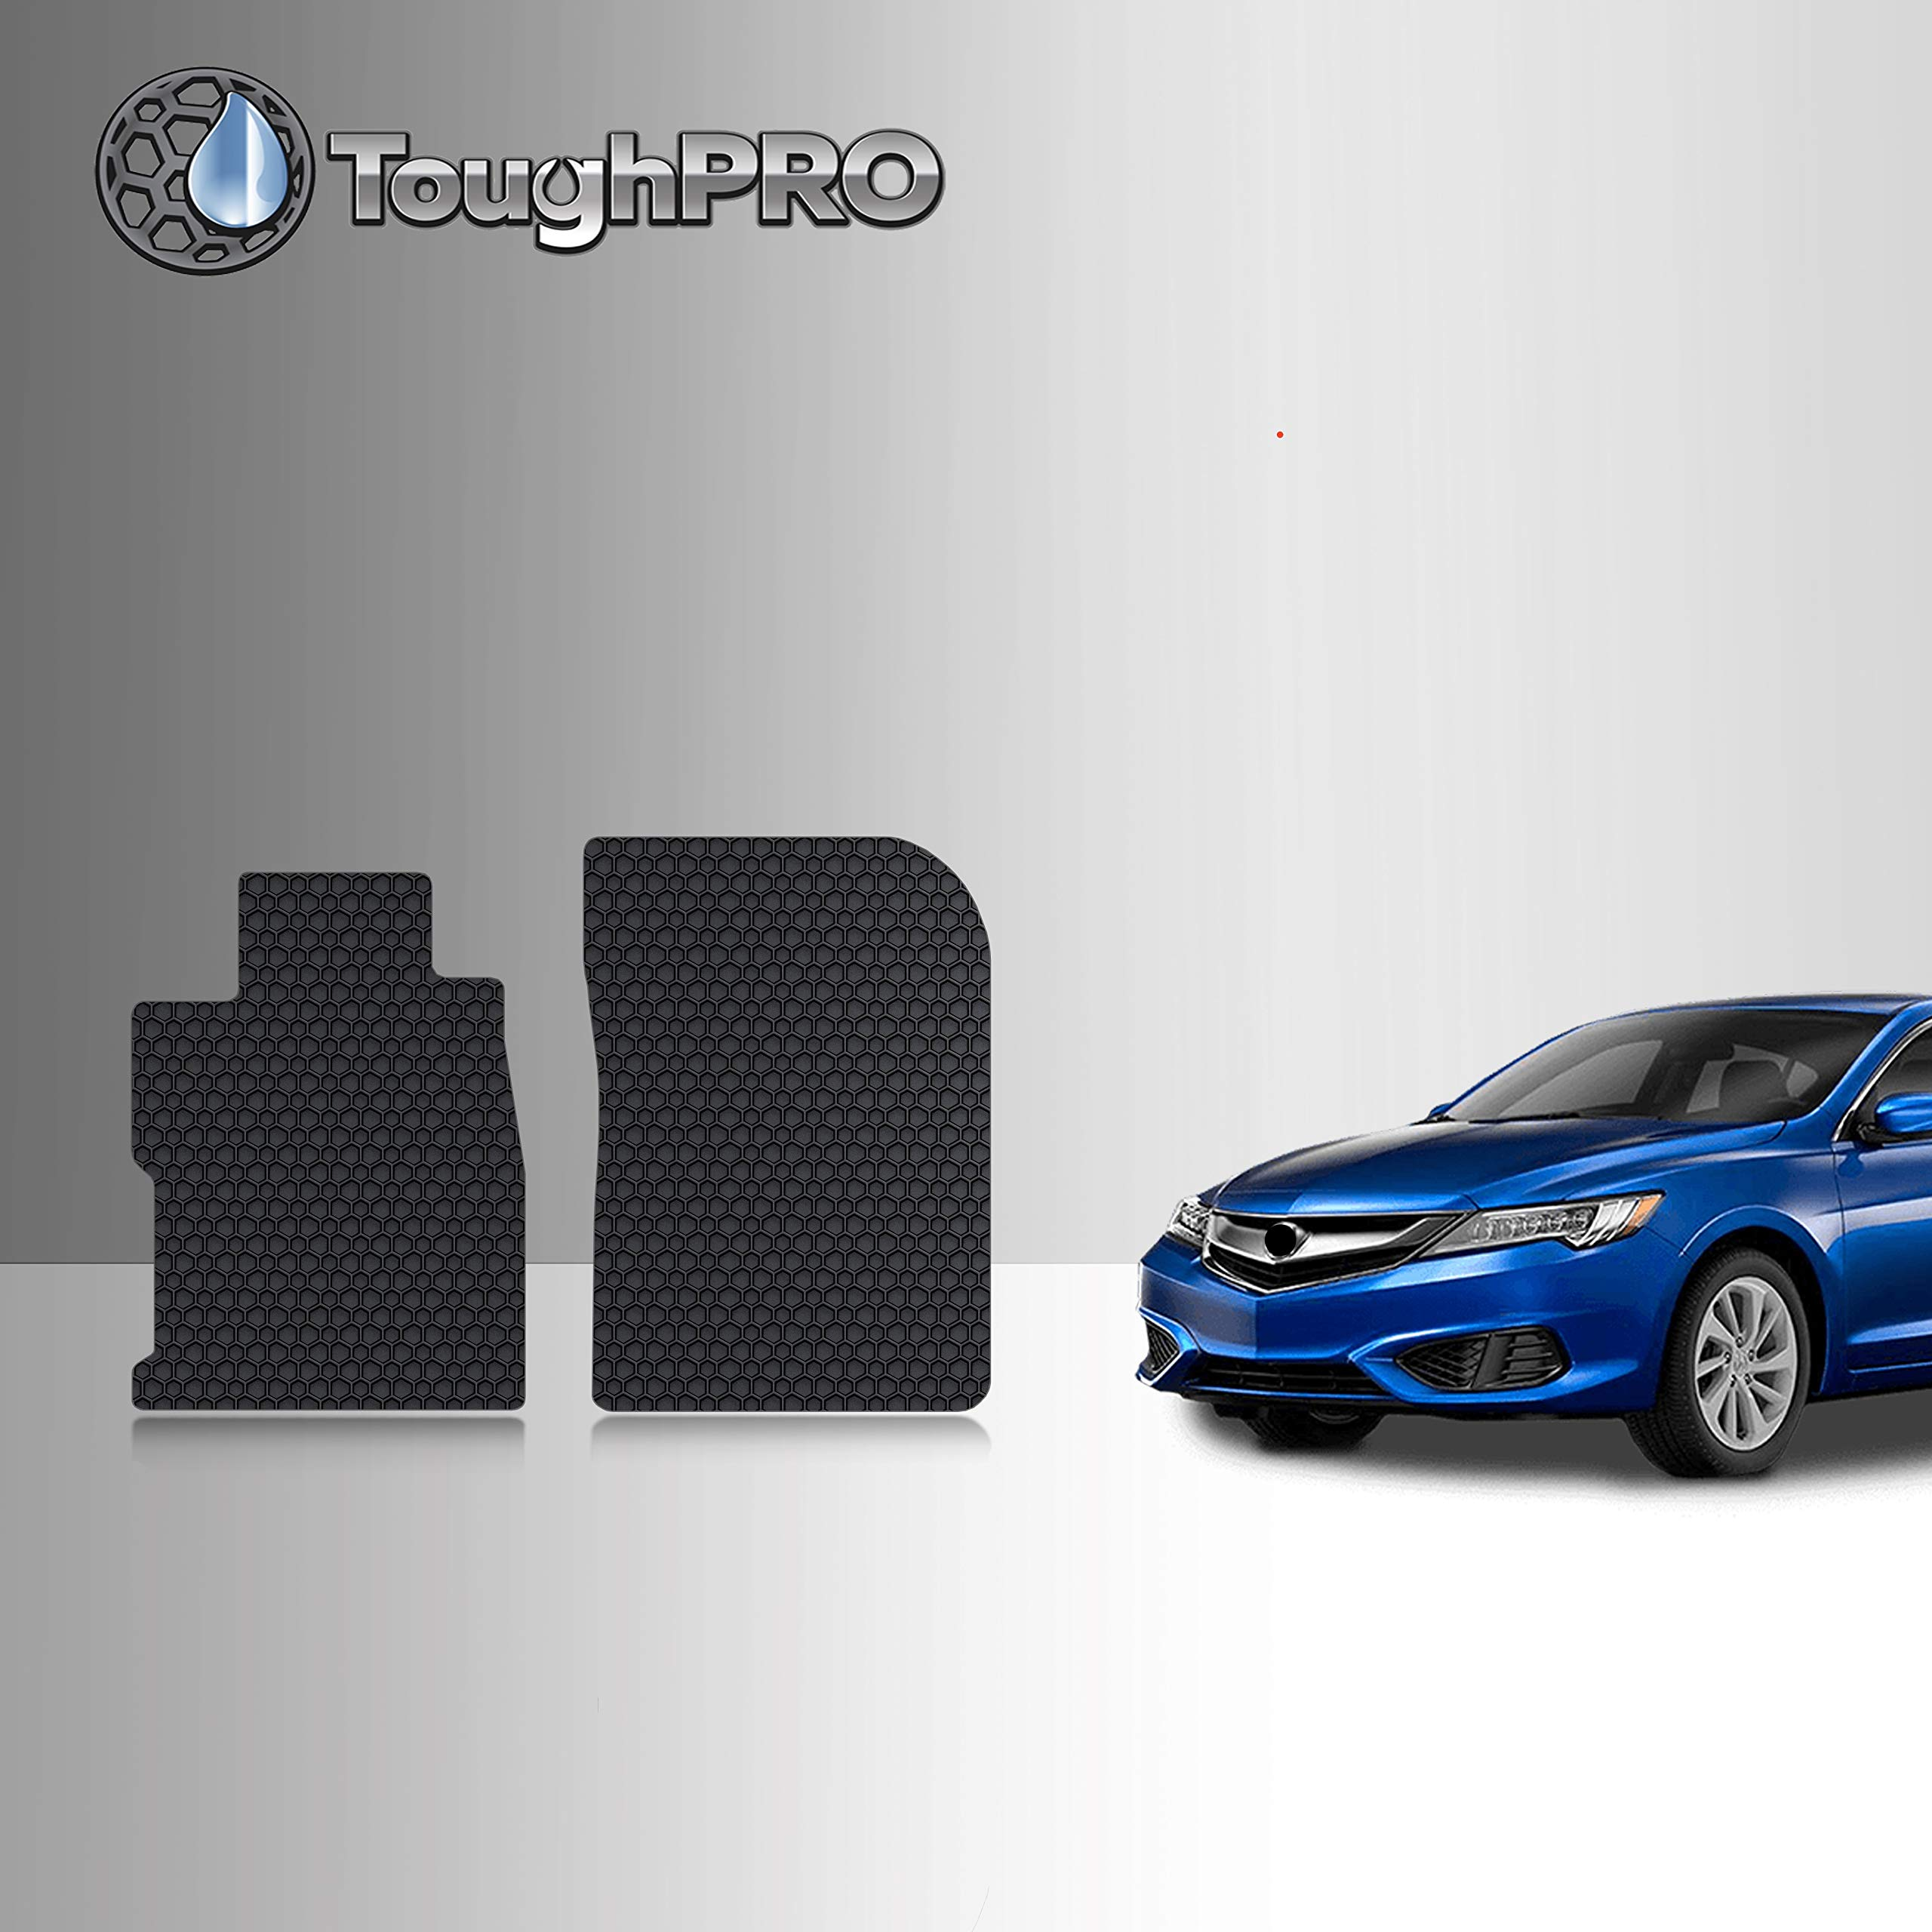 TOUGHPRO Floor Mat Accessories Compatible with Acura ILX - All Weather - Heavy Duty - (Made in USA) - Black Rubber - 2013, 2014, 2015, 2016, 2017, 2018, 2019, 2020 (Front Mats)